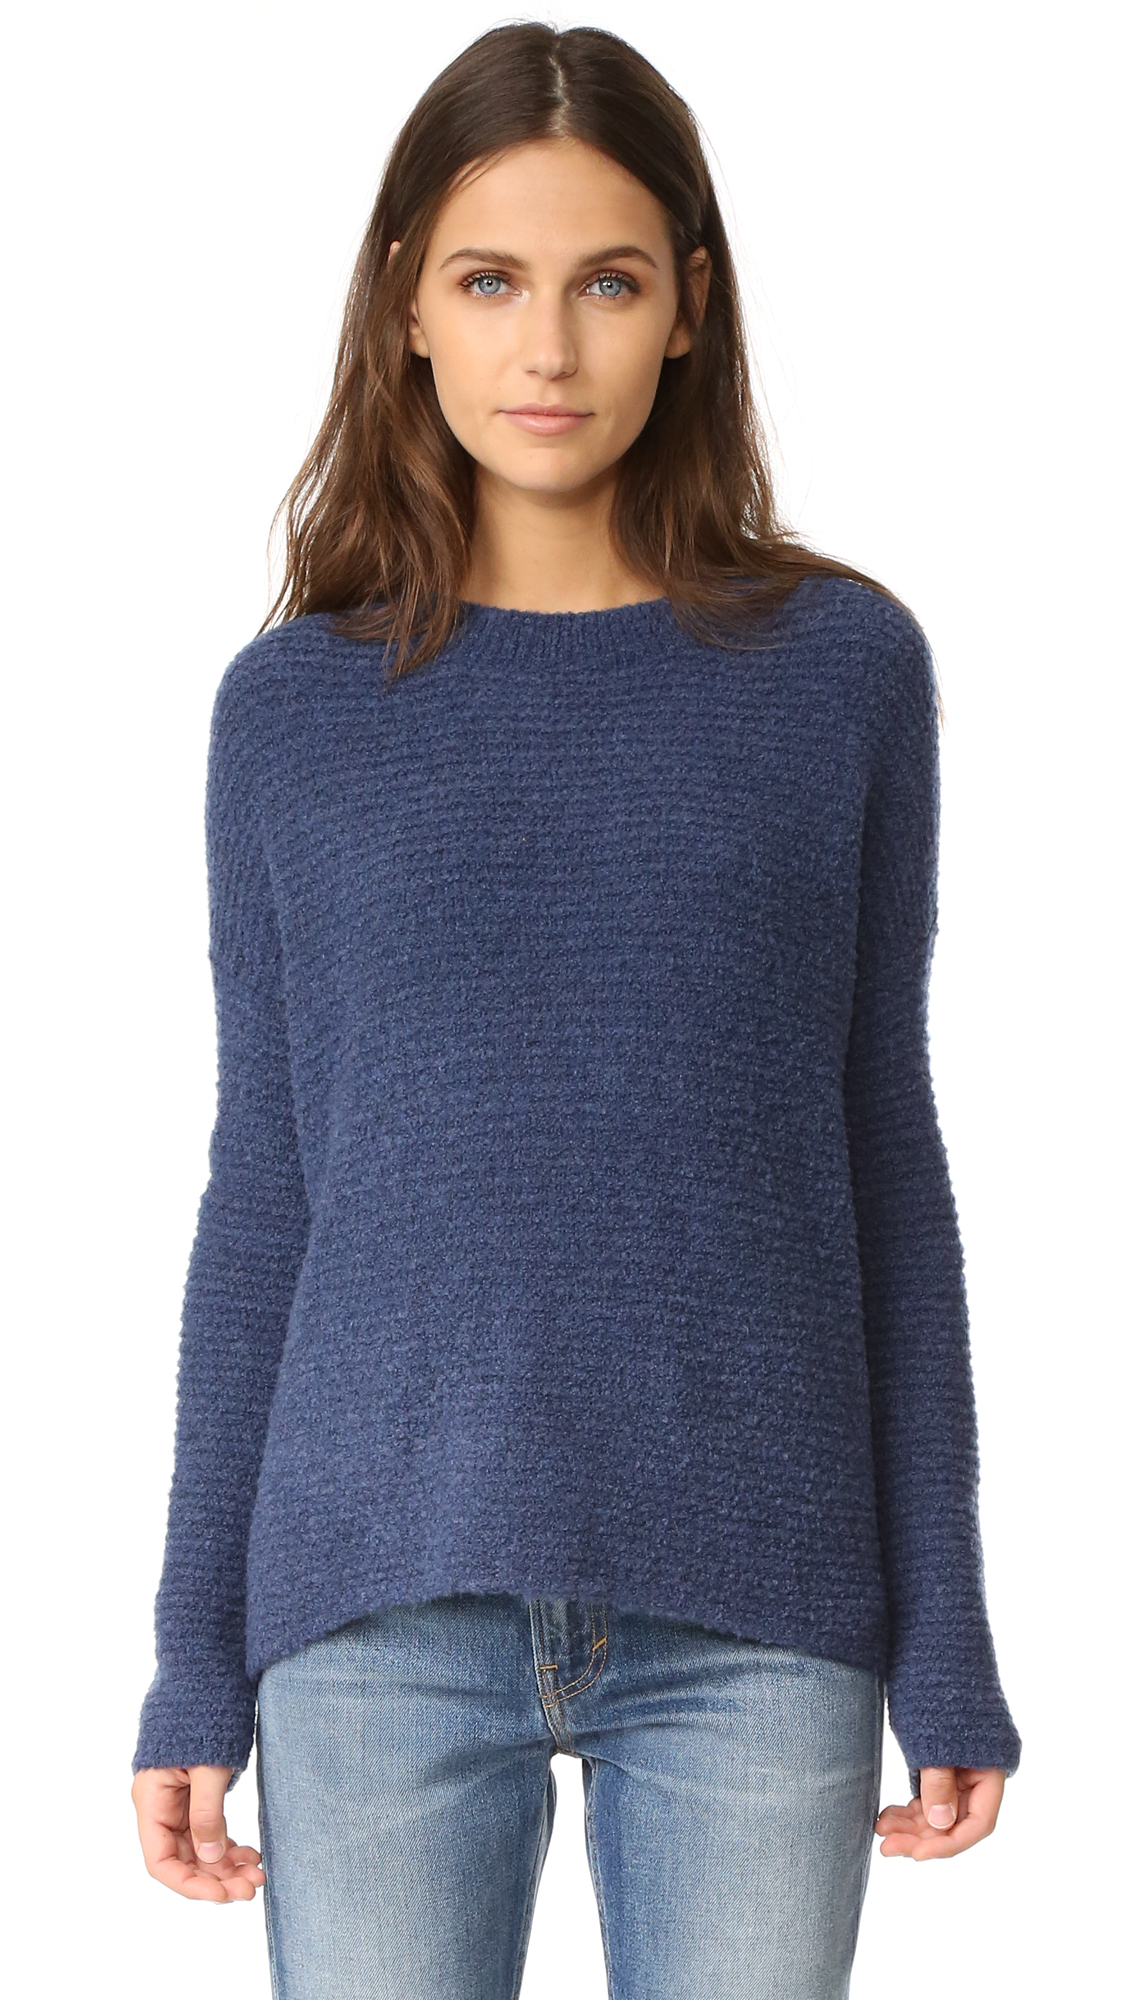 Vince Oversized Crew Sweater - H. Blue at Shopbop